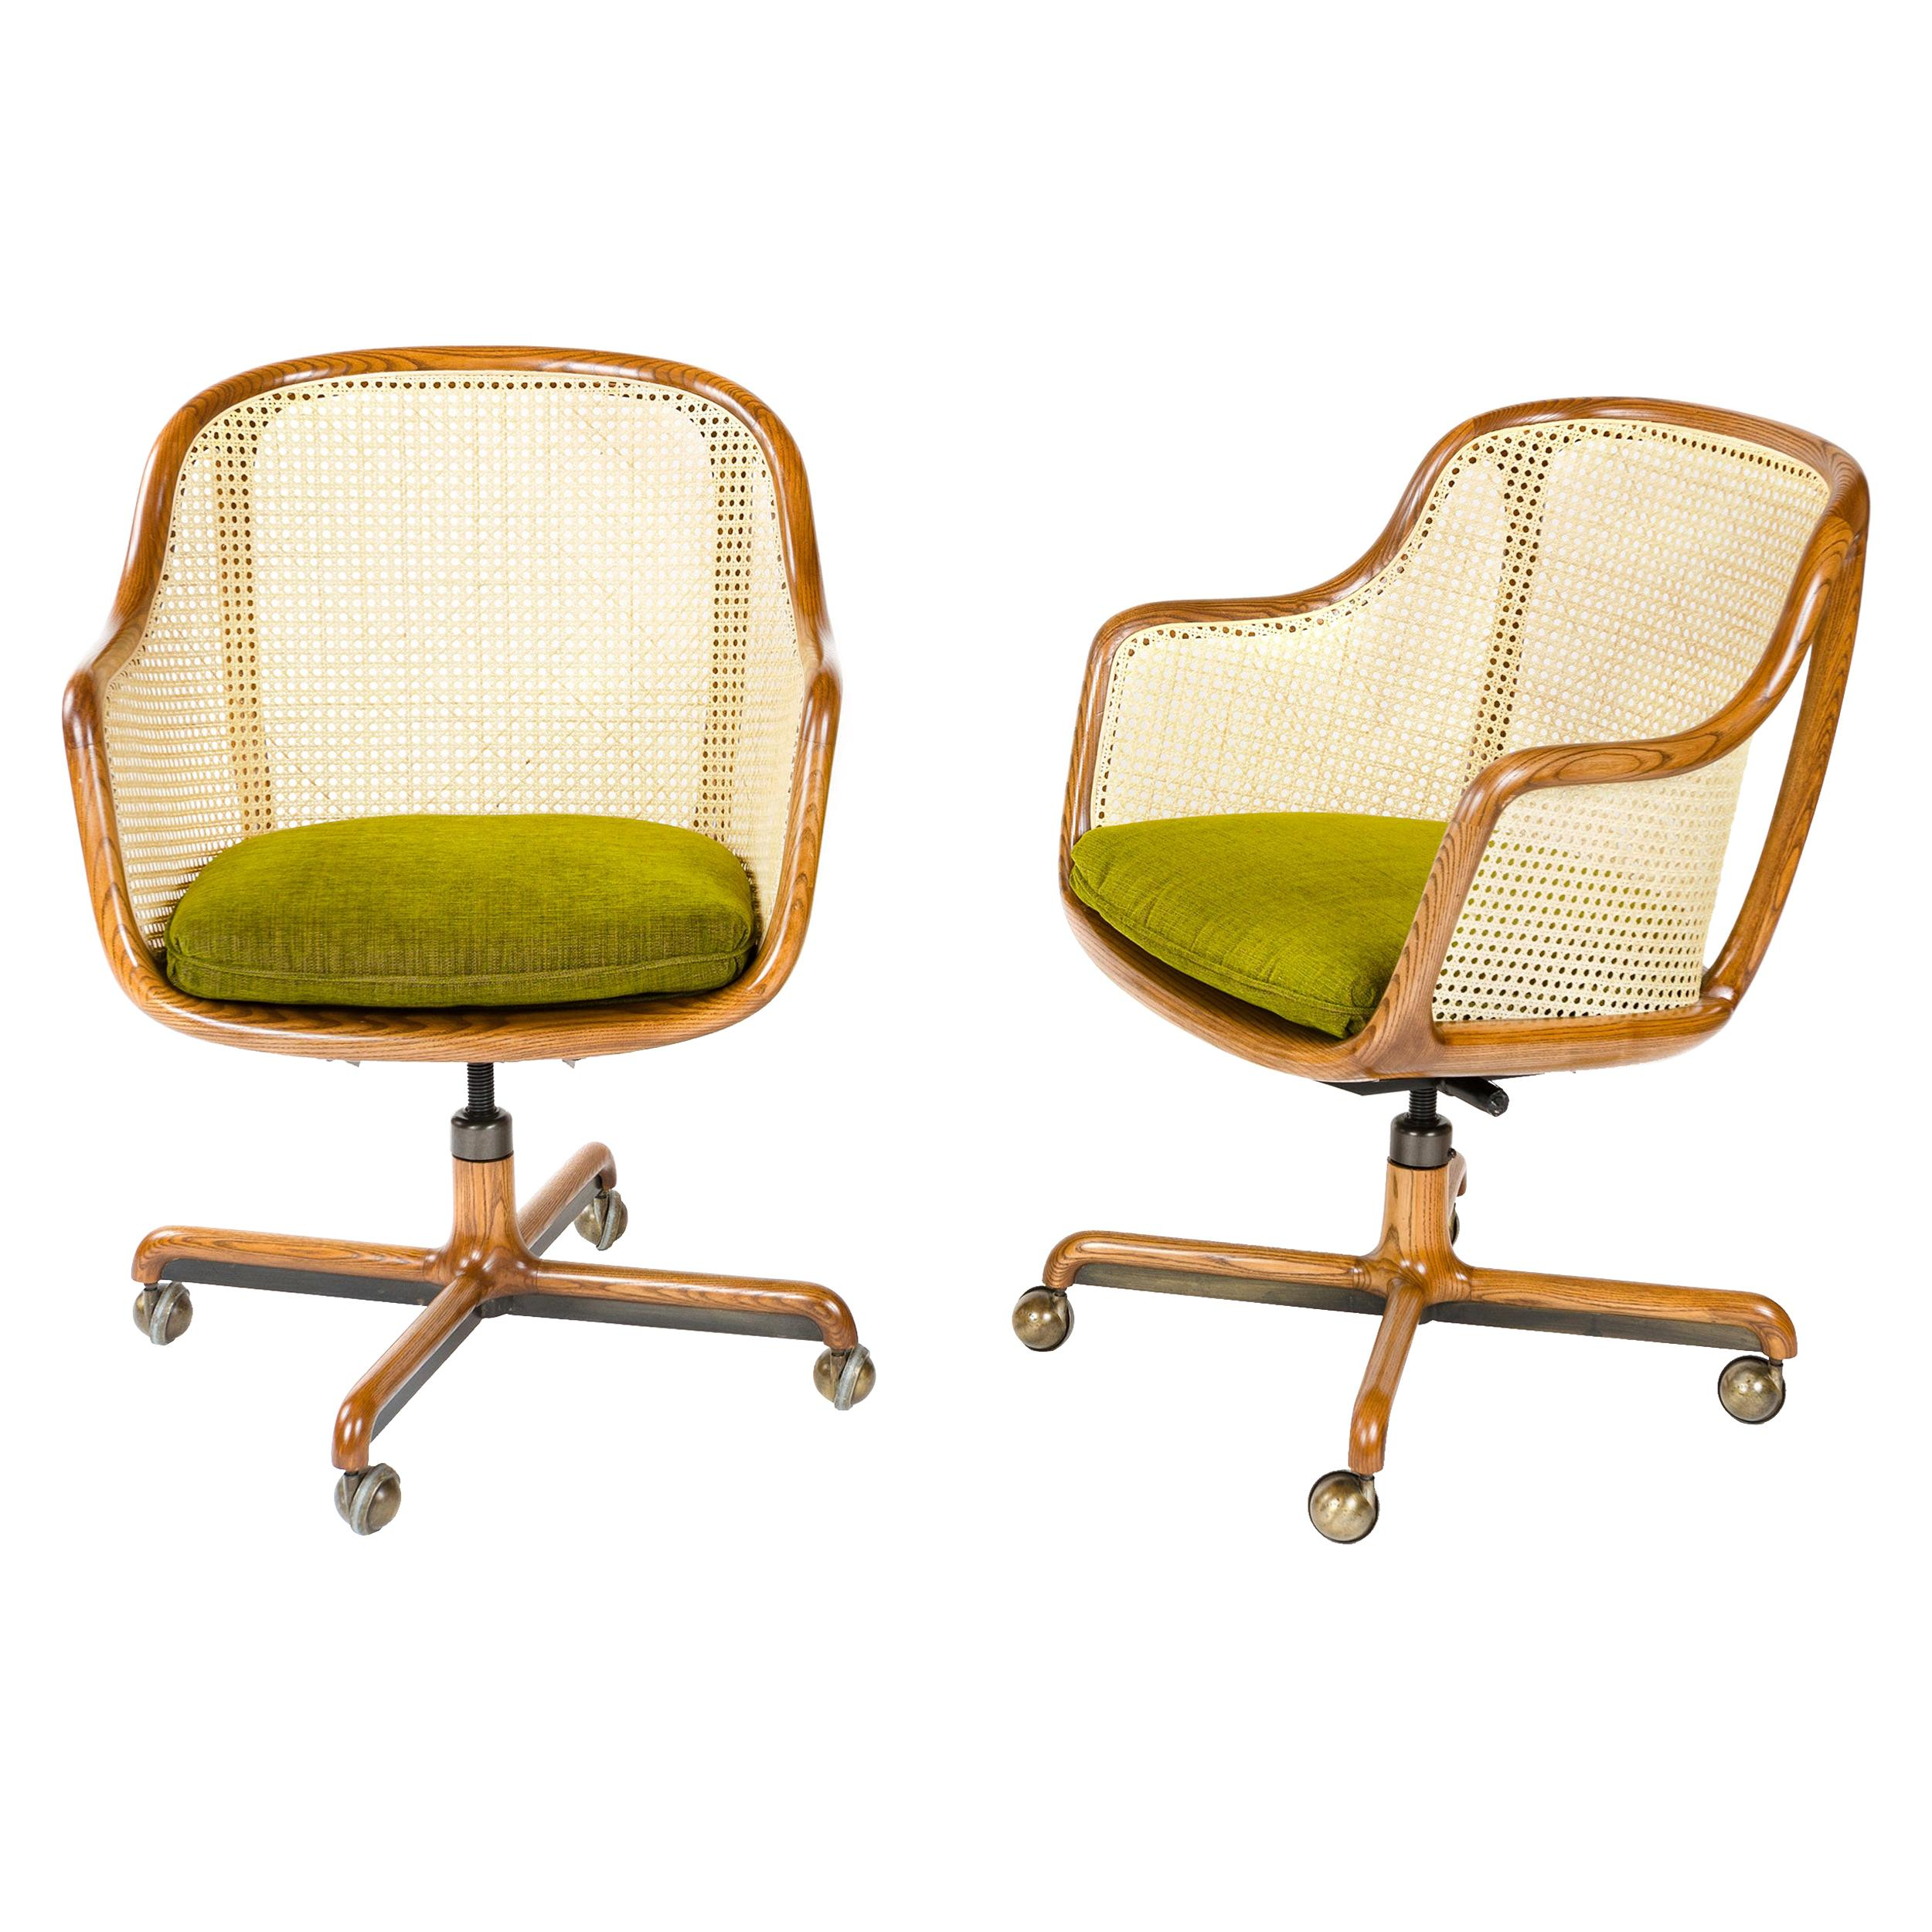 Marvelous Antique And Vintage Office Chairs And Desk Chairs 2 125 Alphanode Cool Chair Designs And Ideas Alphanodeonline